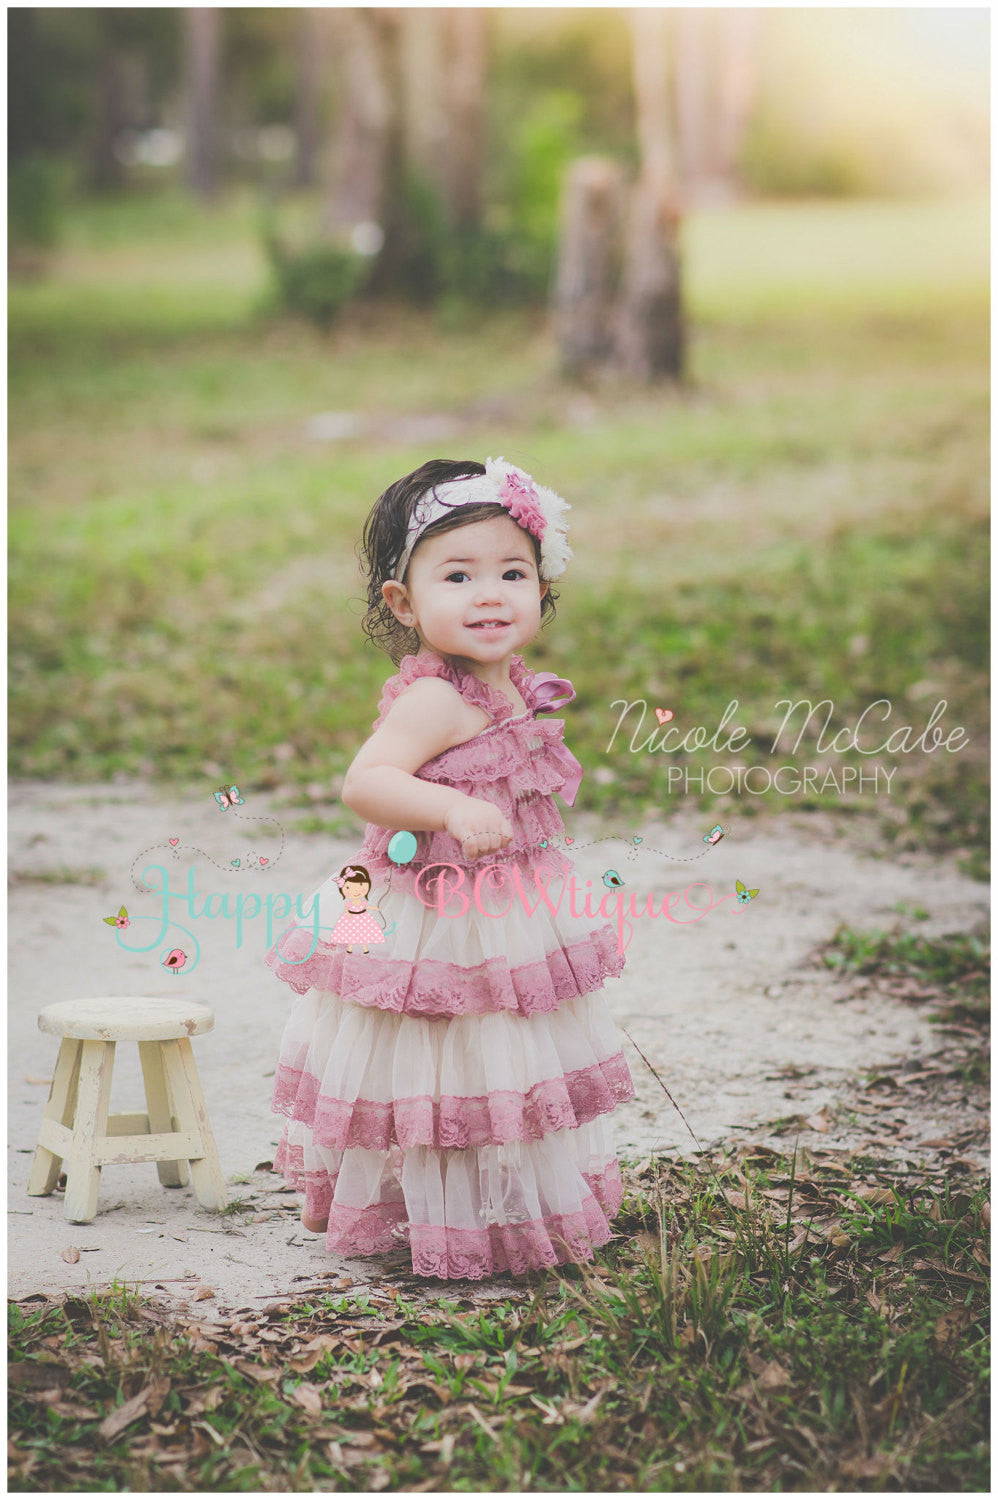 Girl's Dusty Rose Dress /Champagne Rose Chiffon Lace Dress - Happy BOWtique - children's clothing, Baby Girl clothing